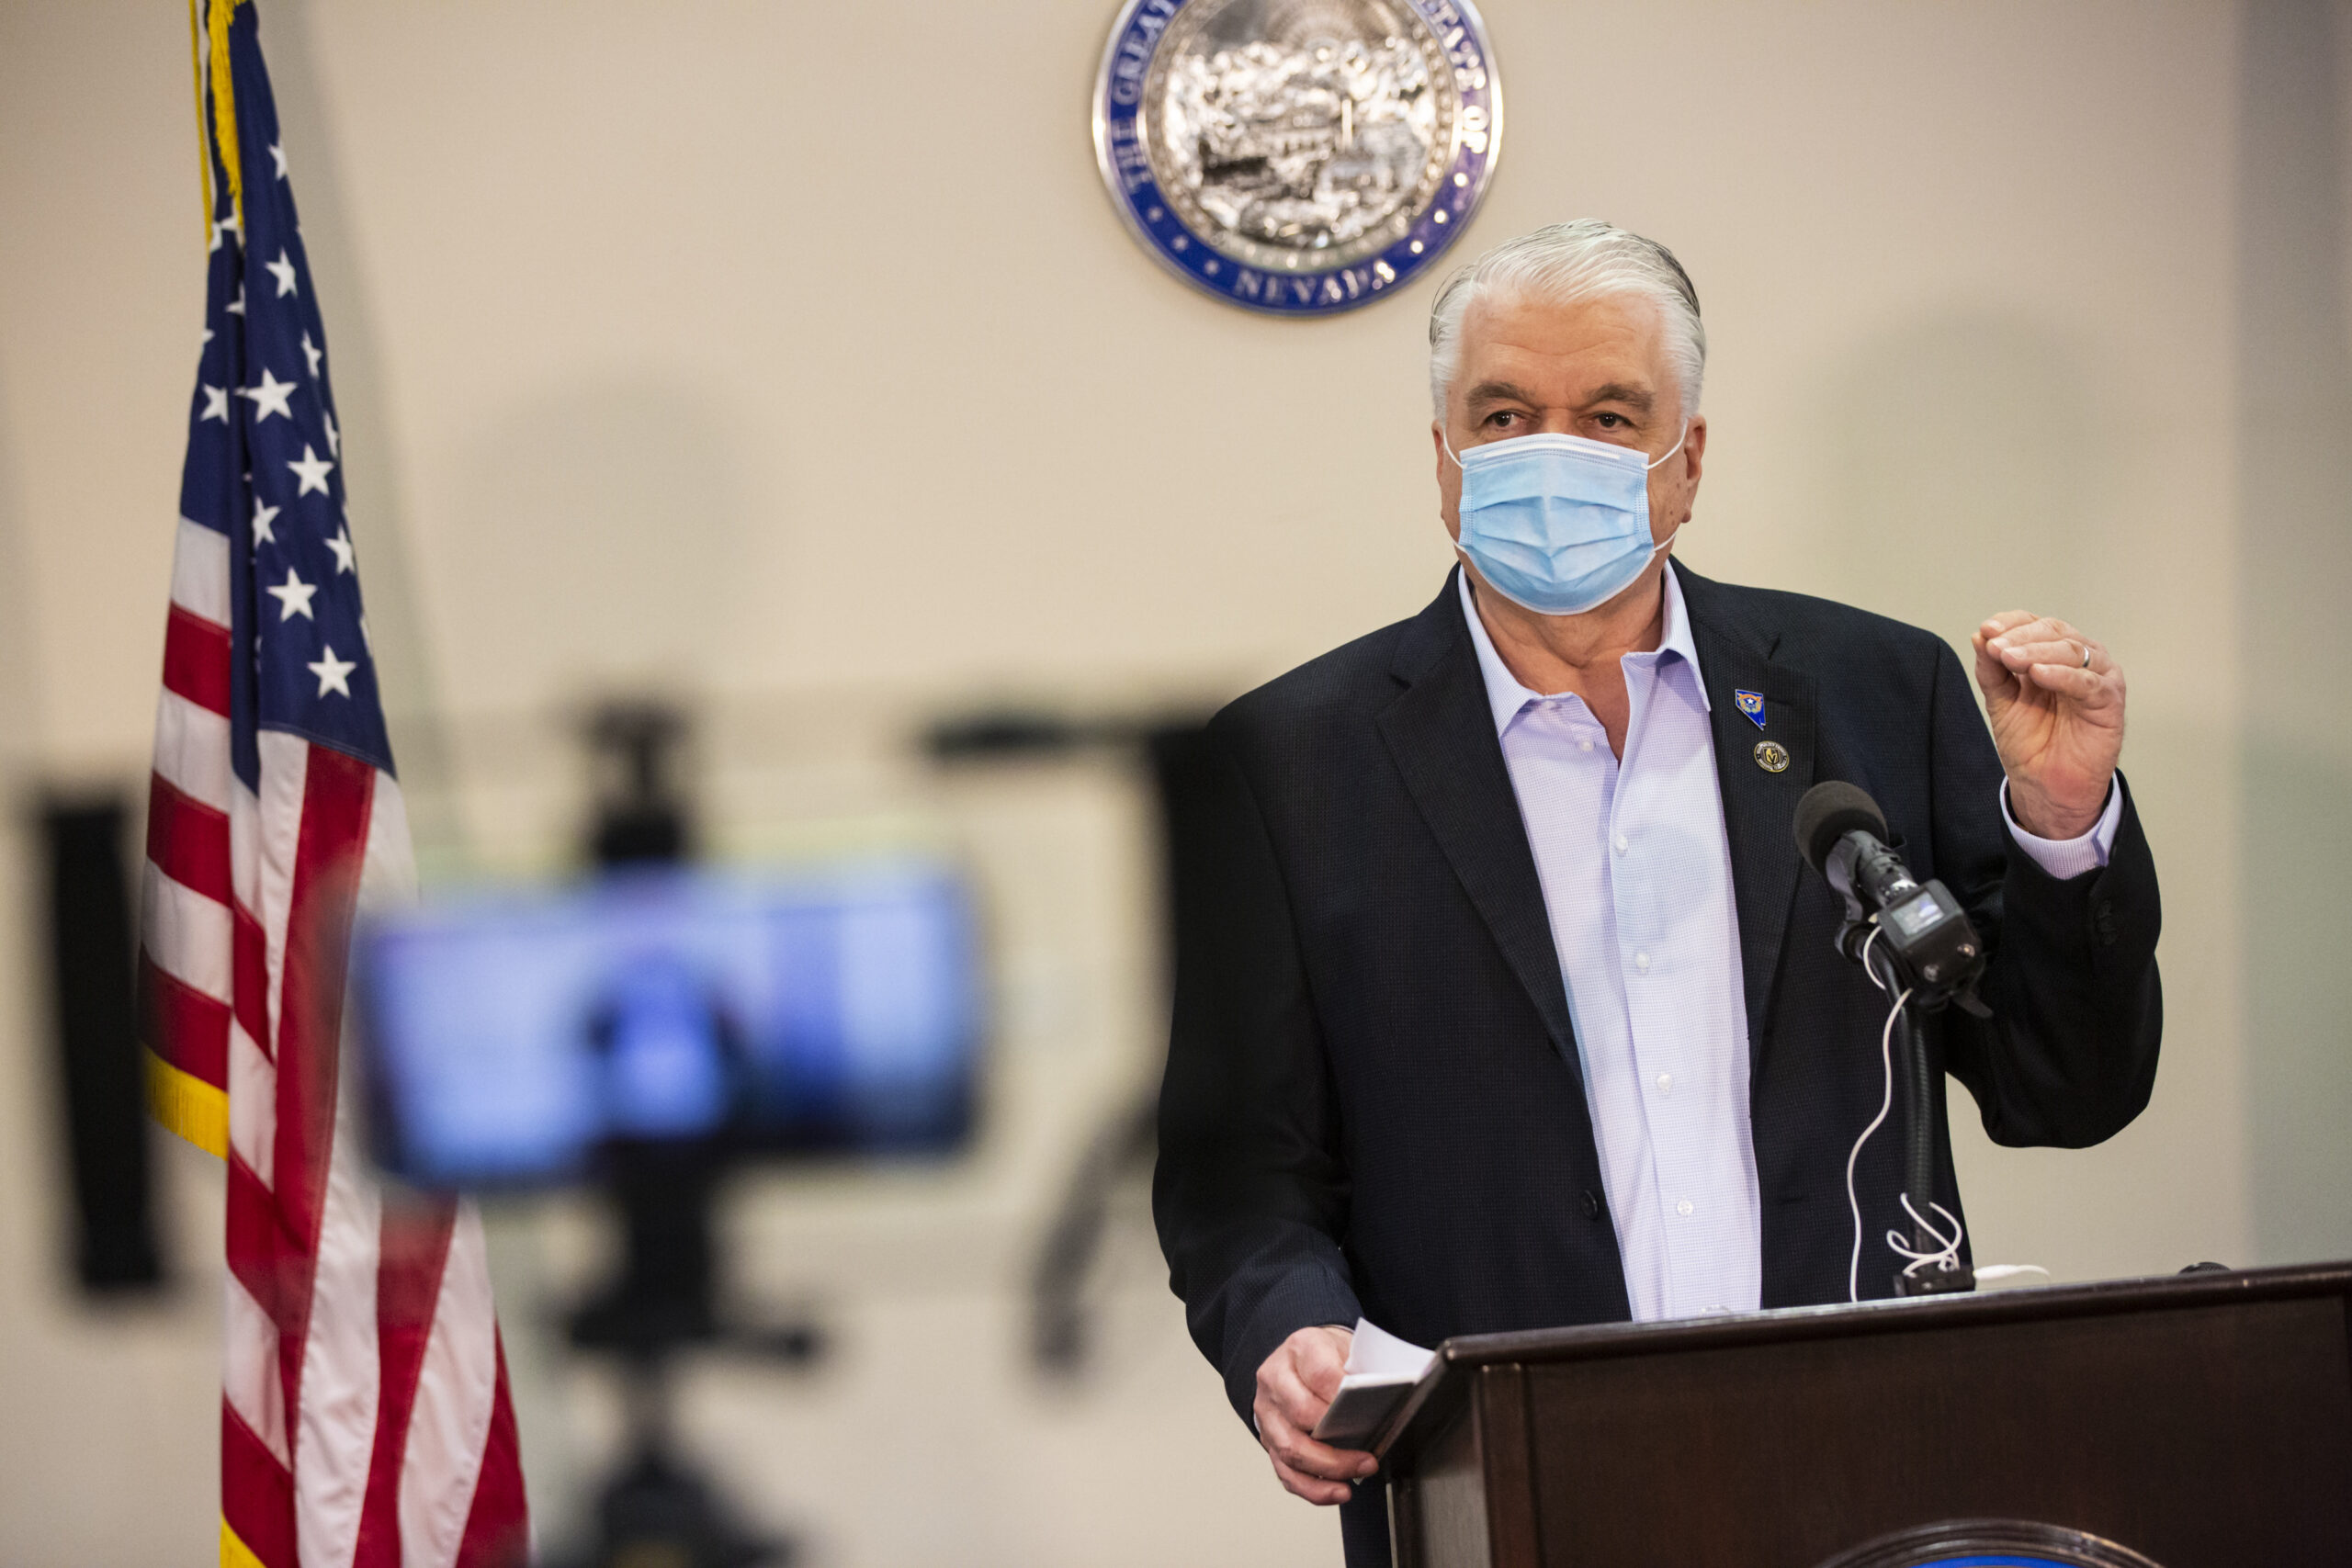 Sisolak speaks during press conference